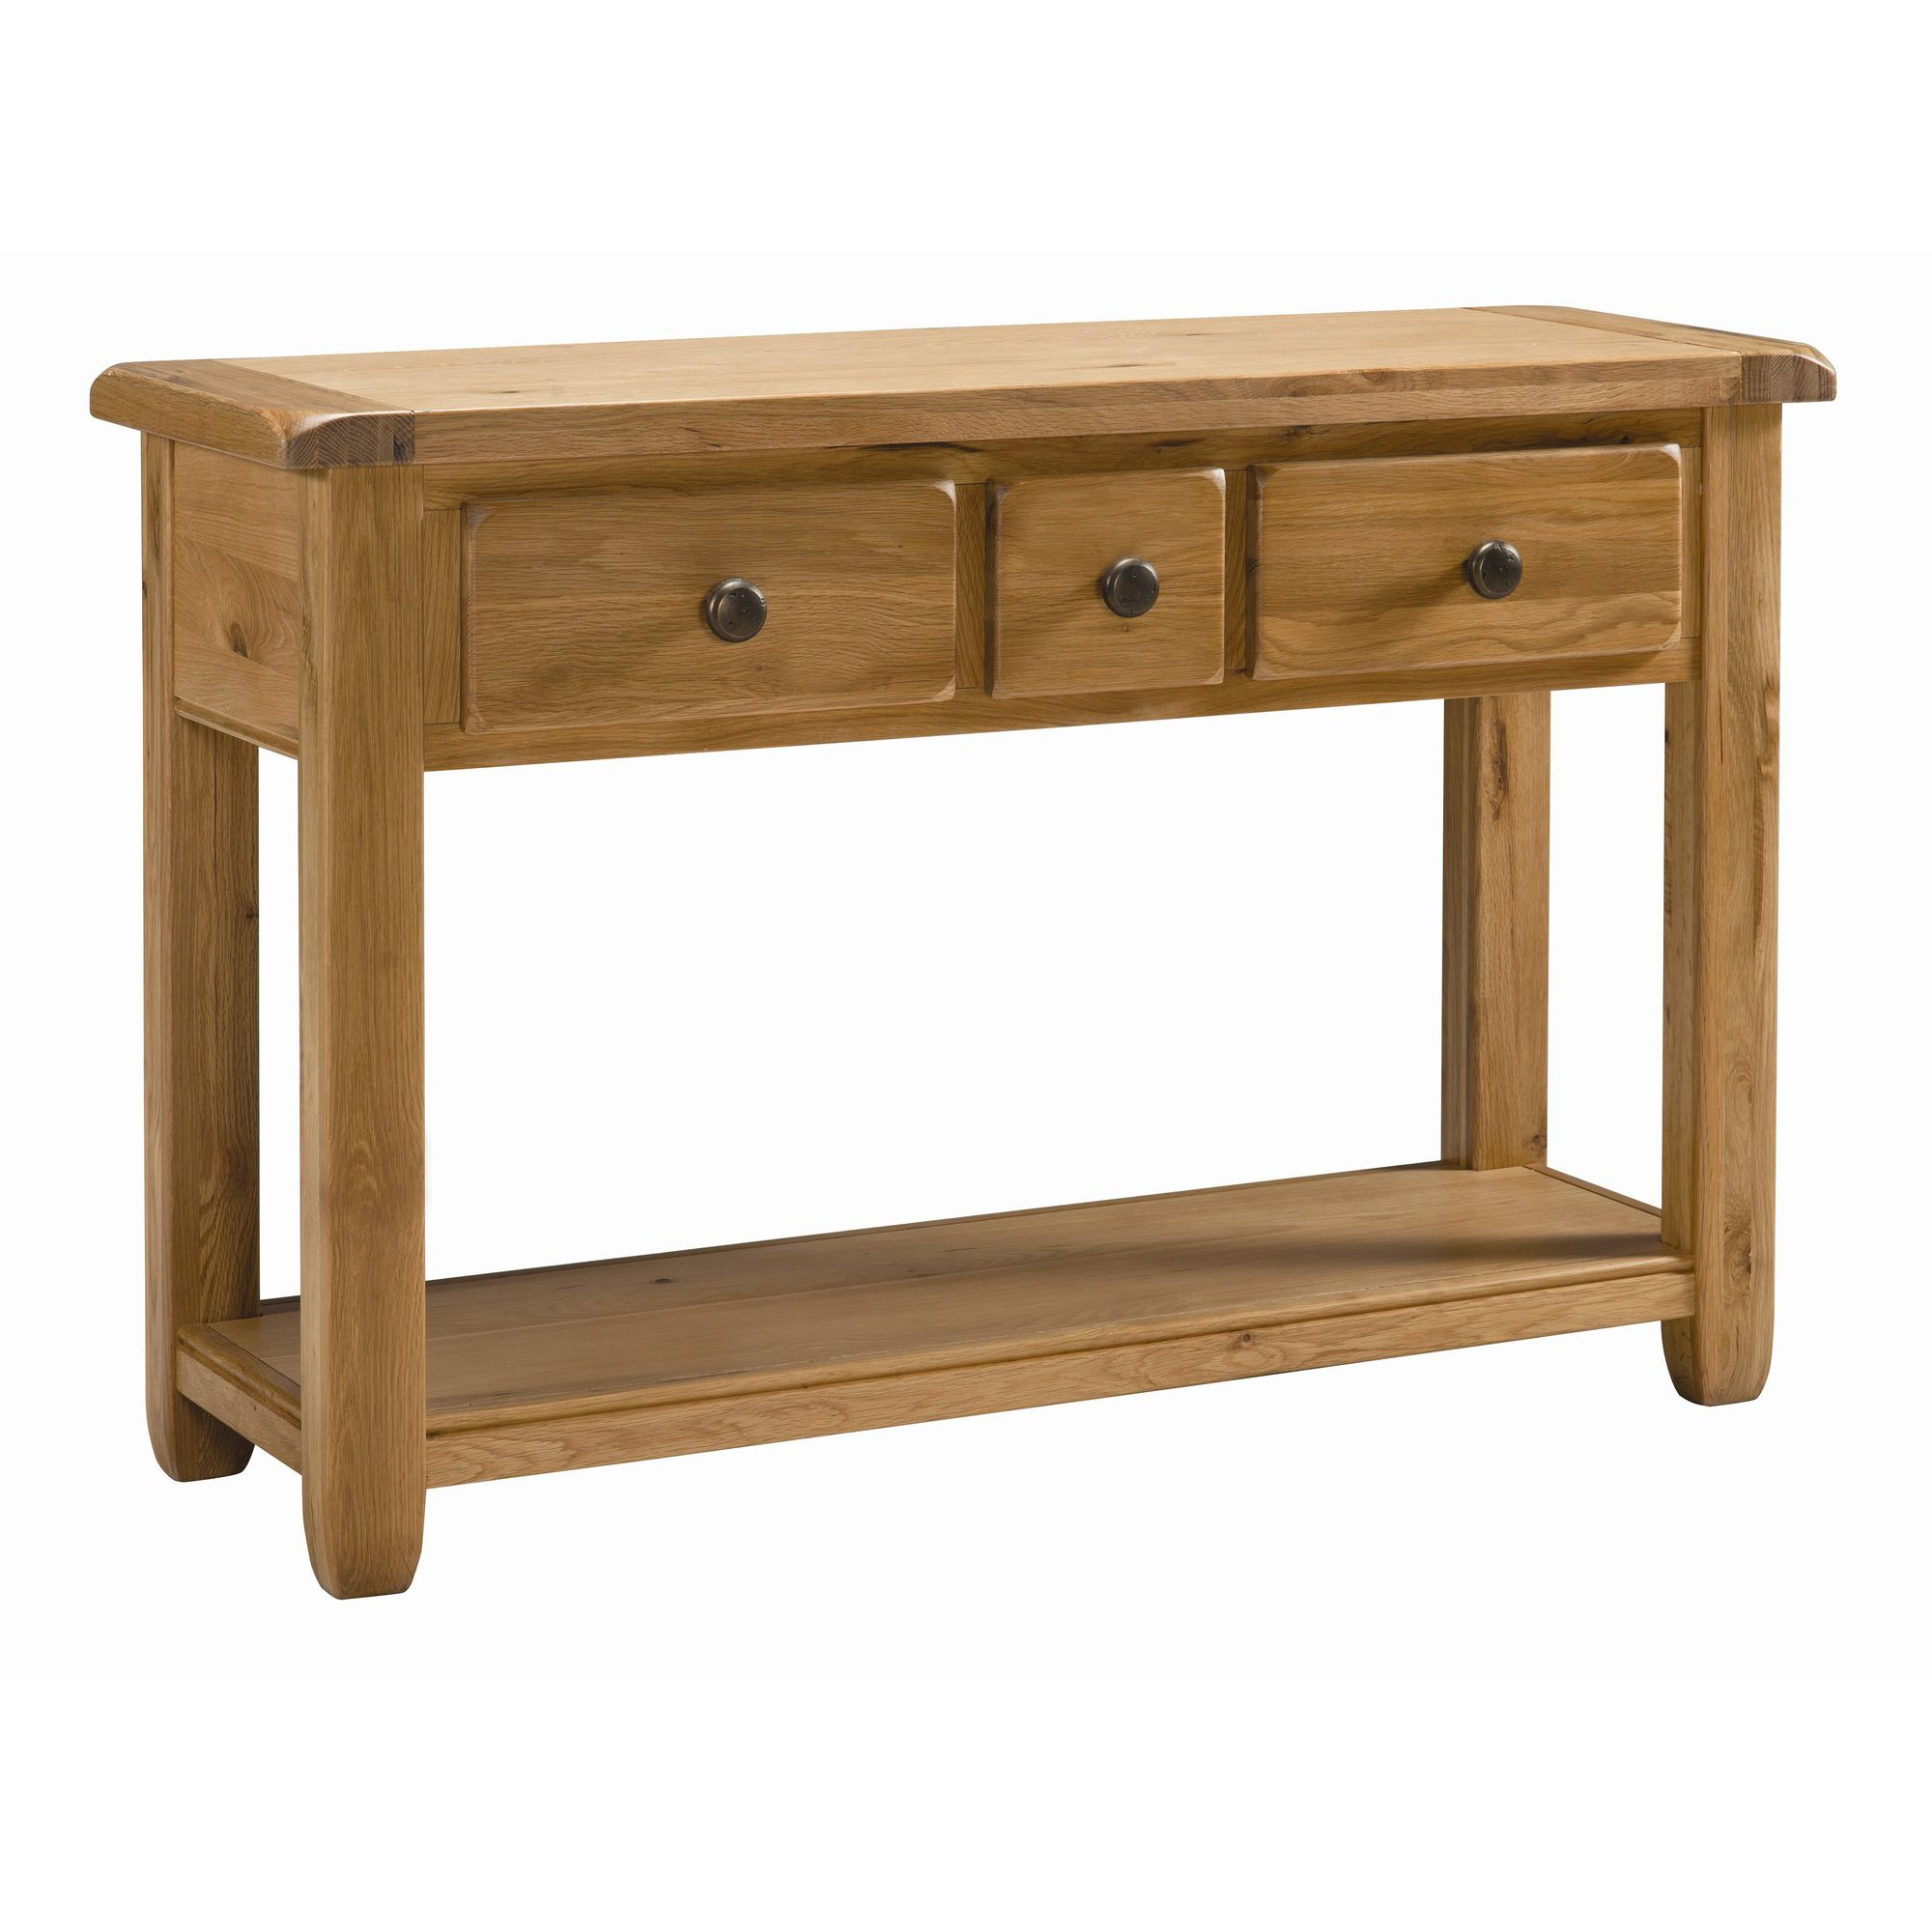 Alterton Furniture Cherry Creek Oak Large Console Table at Tesco Direct